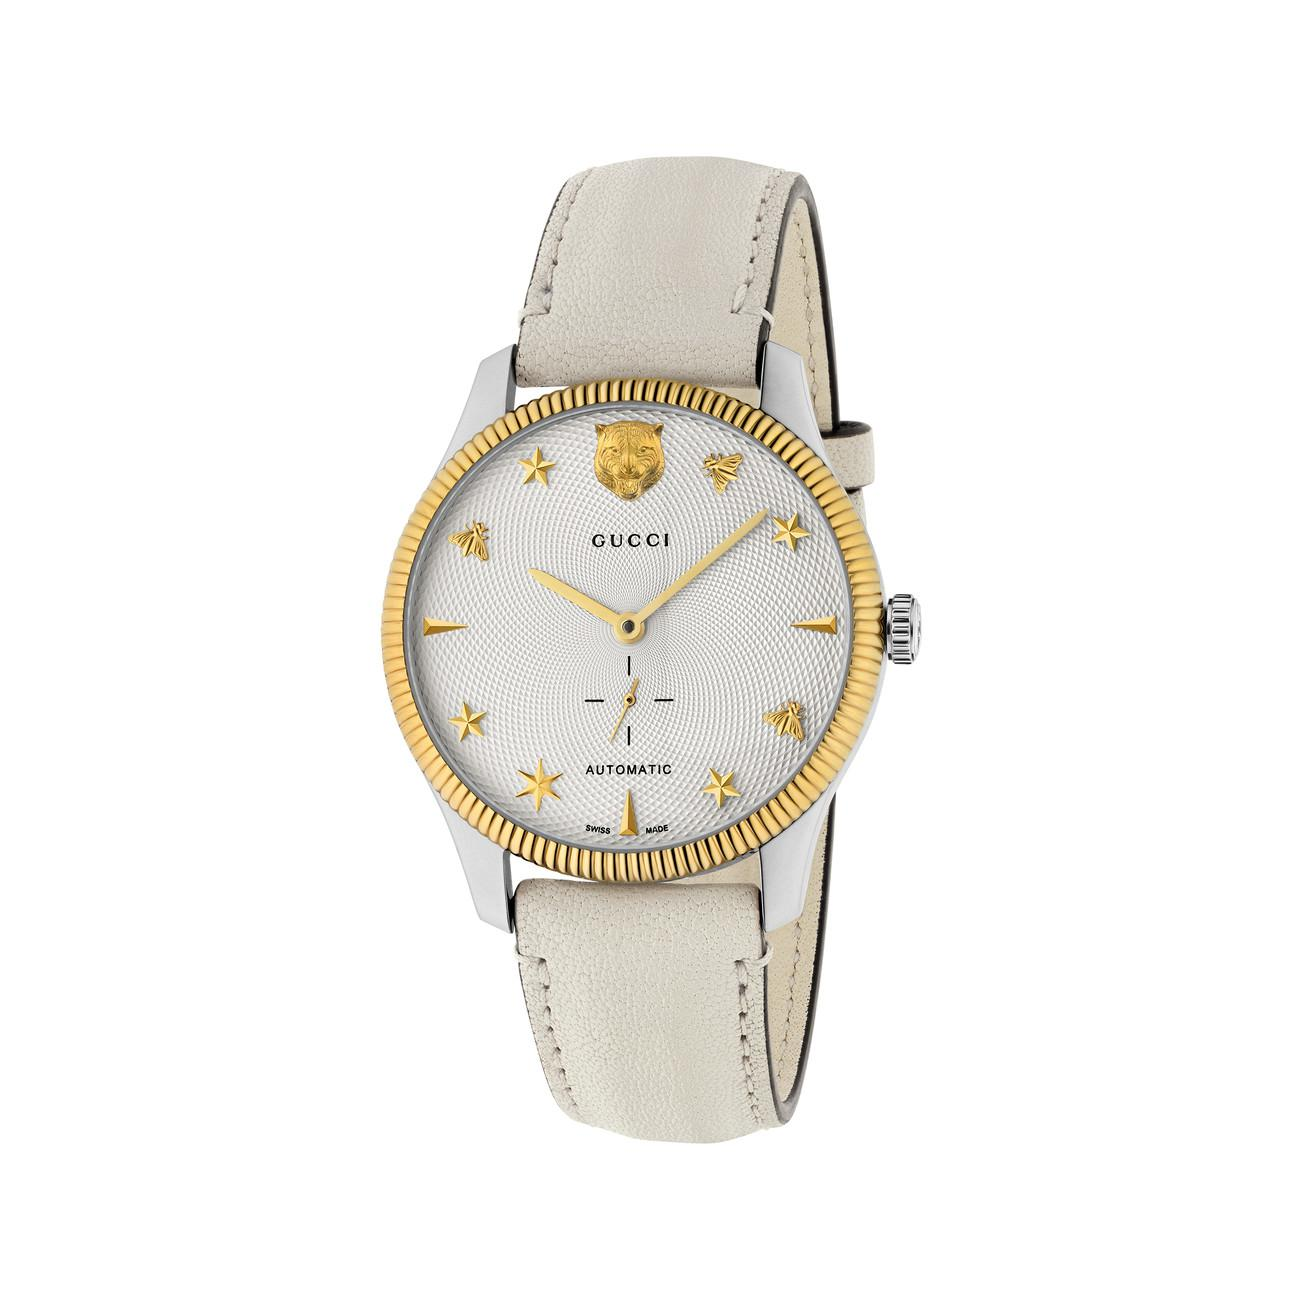 05219447cdc Lyst - Gucci G-timeless Stainless Steel Case 40mm Automatic Silver ...